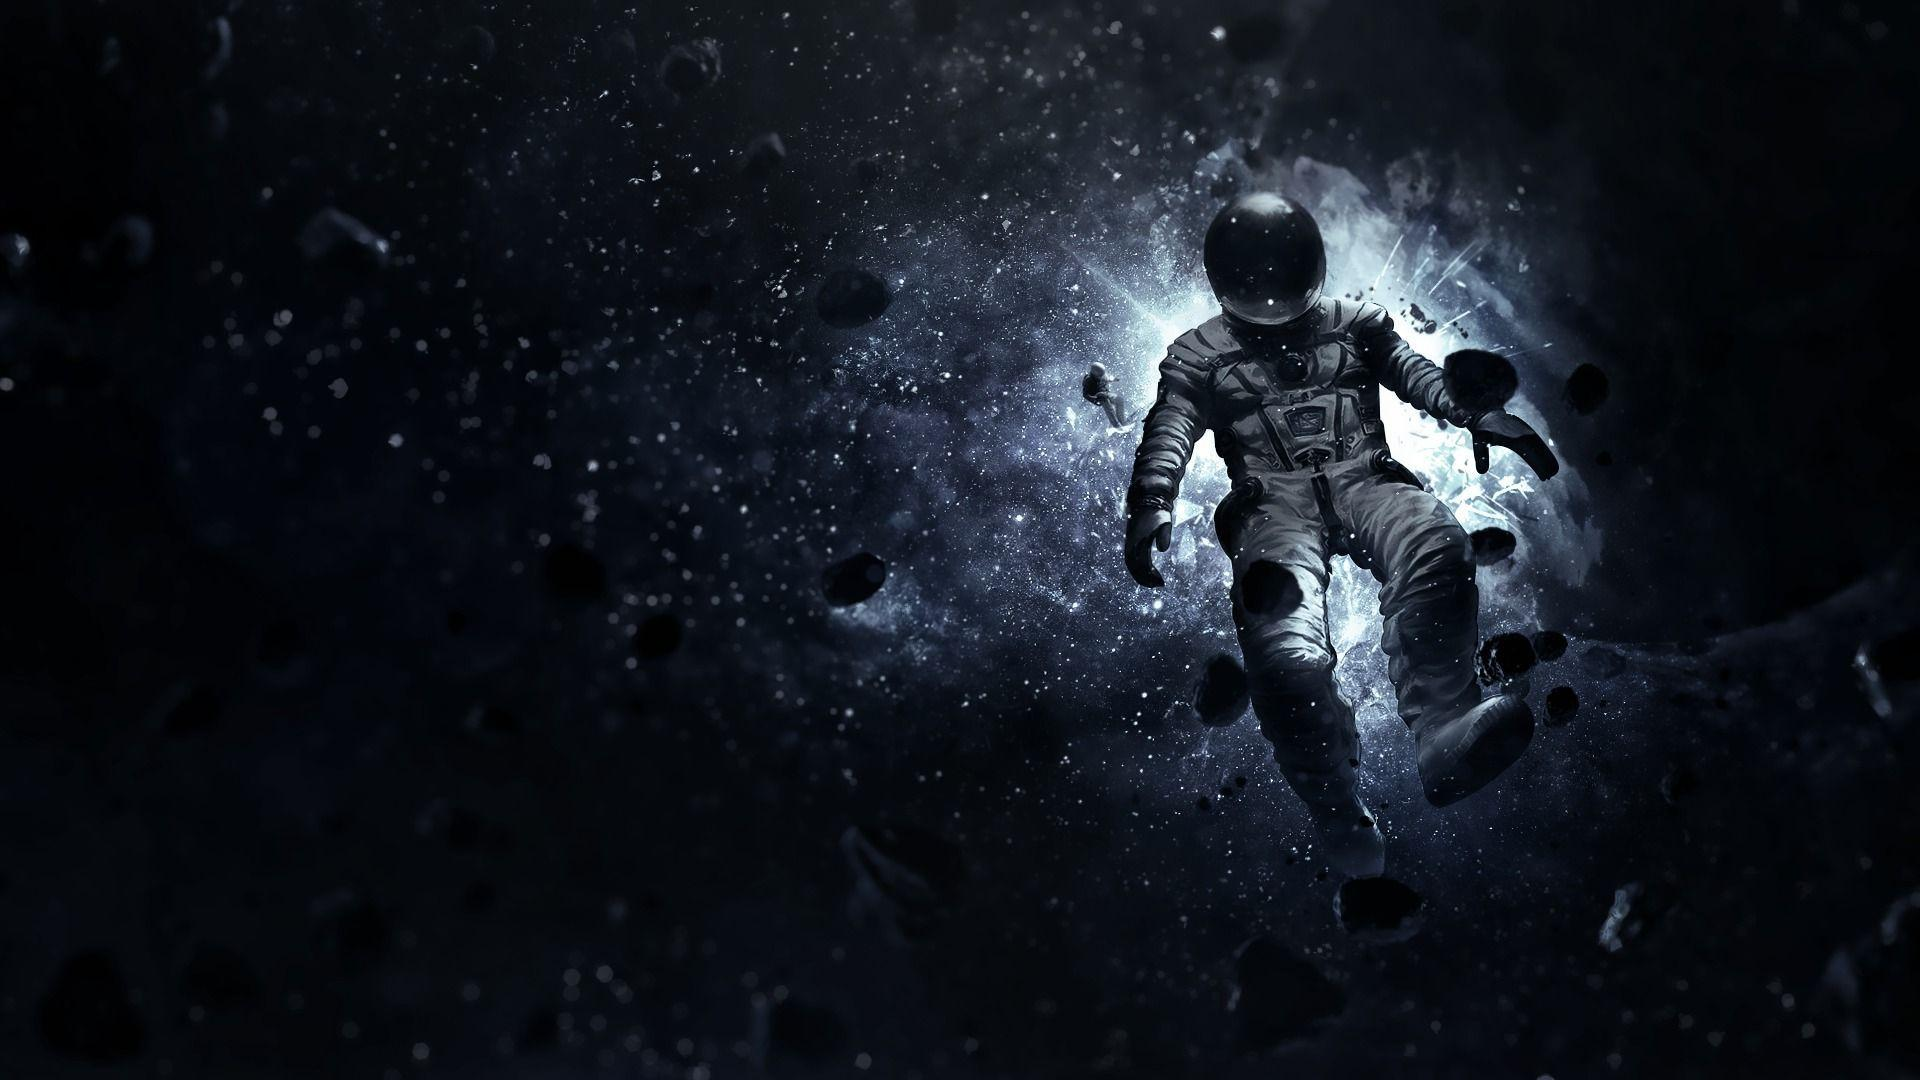 Background Lost In Space Wallpaper